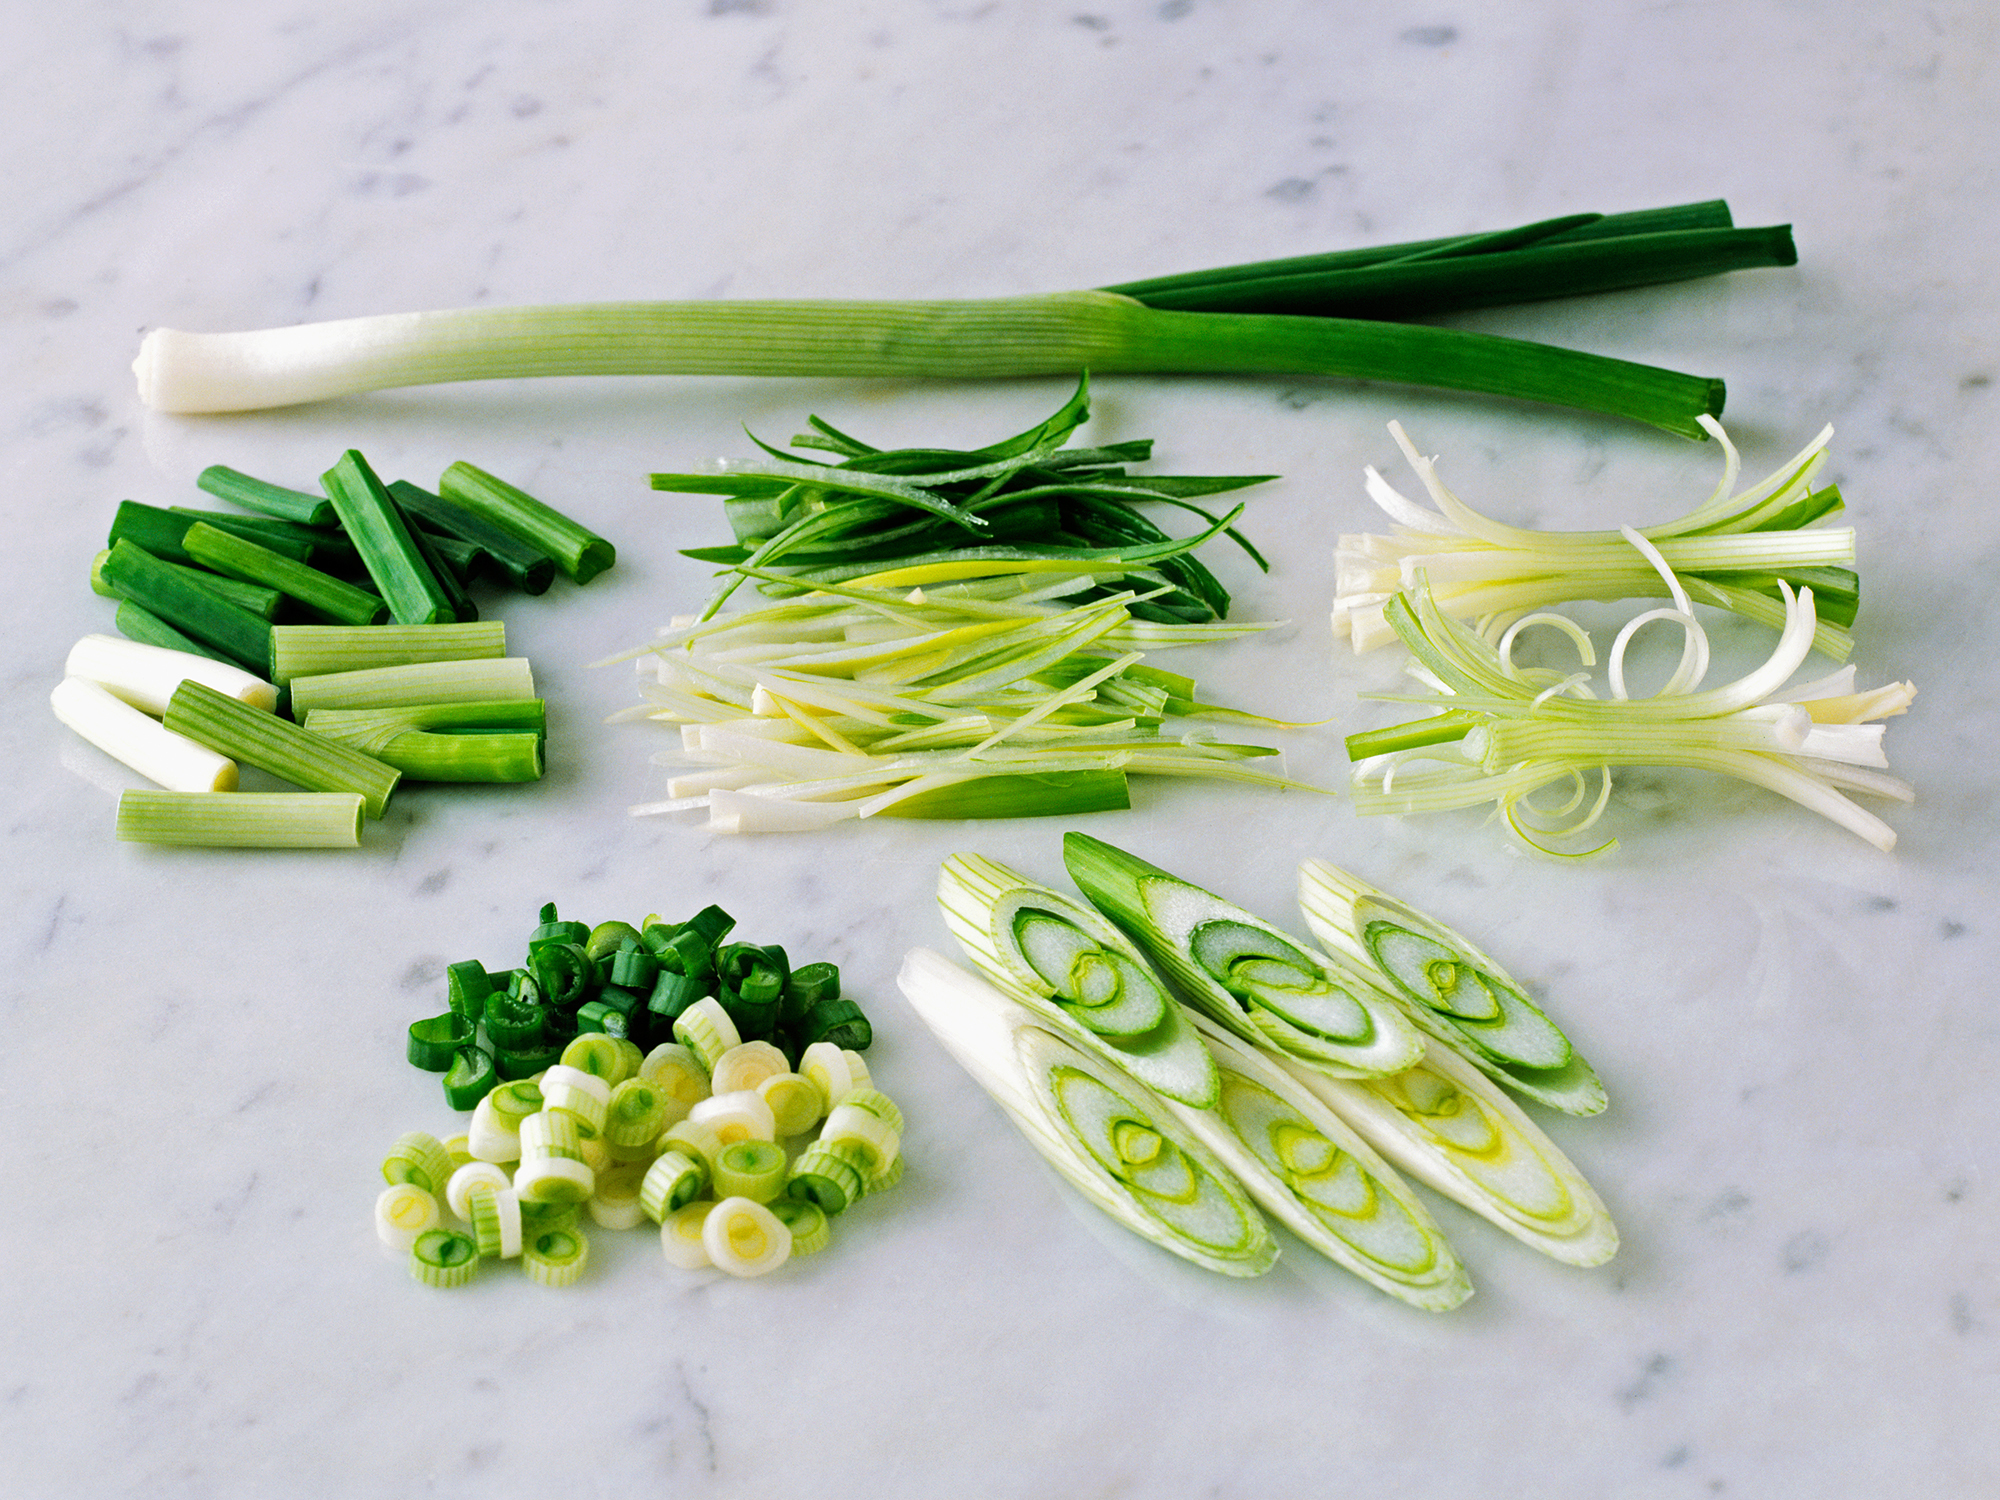 Slice, Dice, Chop Or Julienne: Does The Cut Change The Flavor?